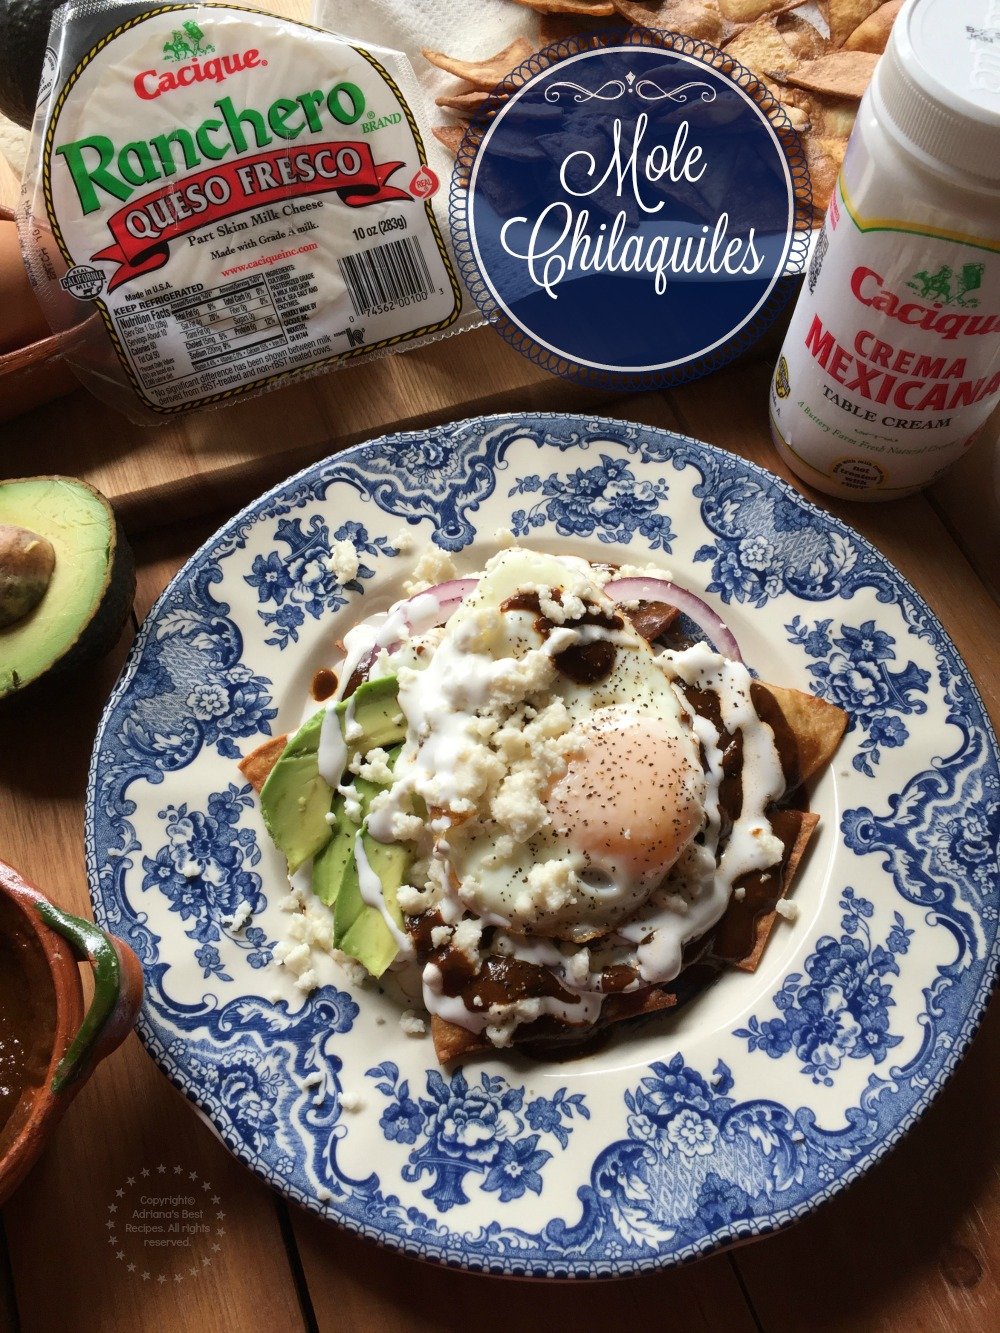 Mole Chilaquiles made with Cacique Ranchero Queso Fresco and Crema Mexicana